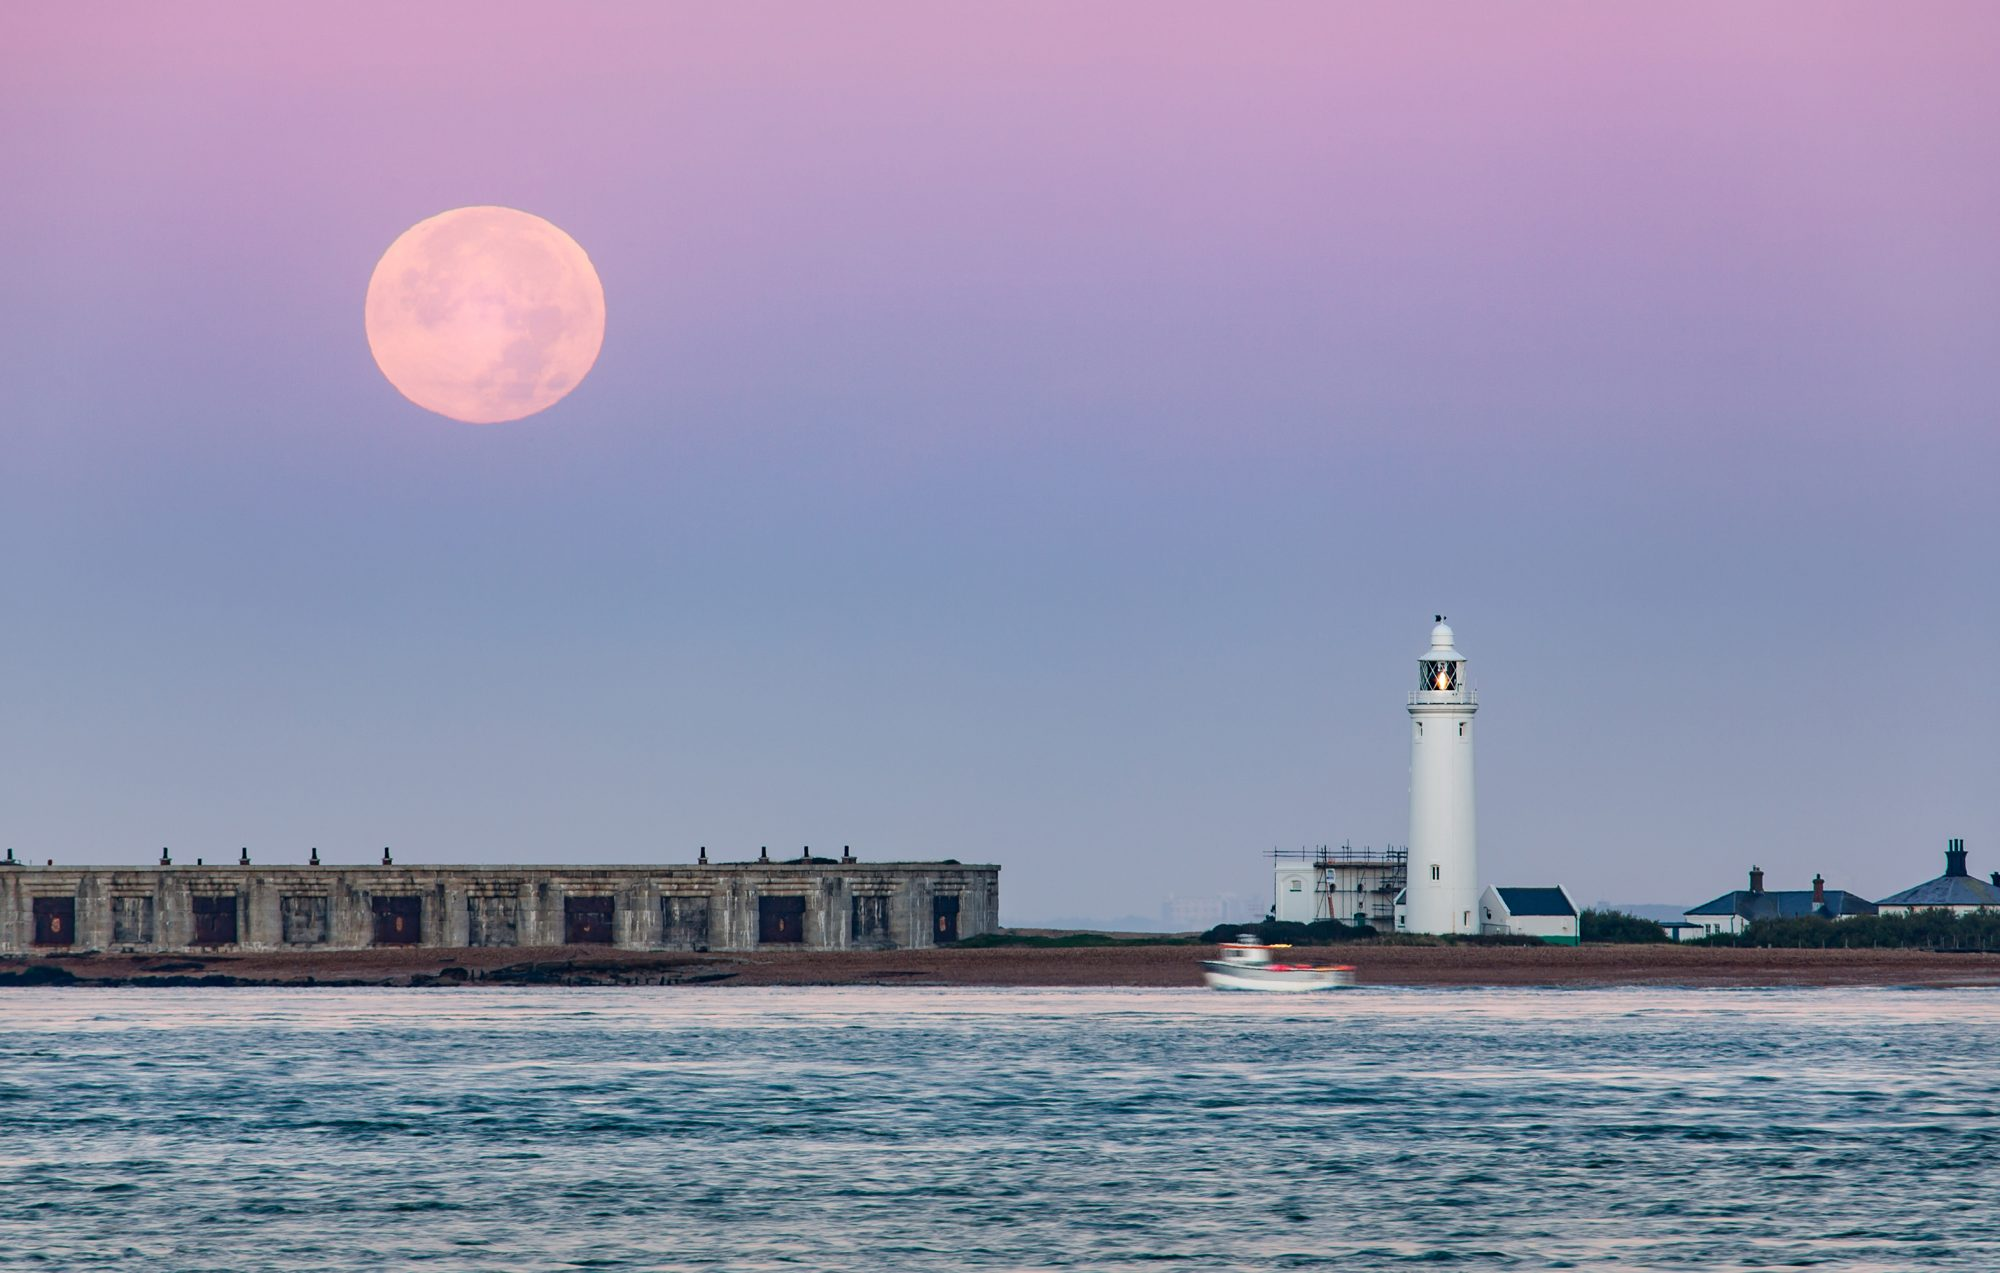 Hurst Point Lighthouse and Super Moon / Hunter's Moon